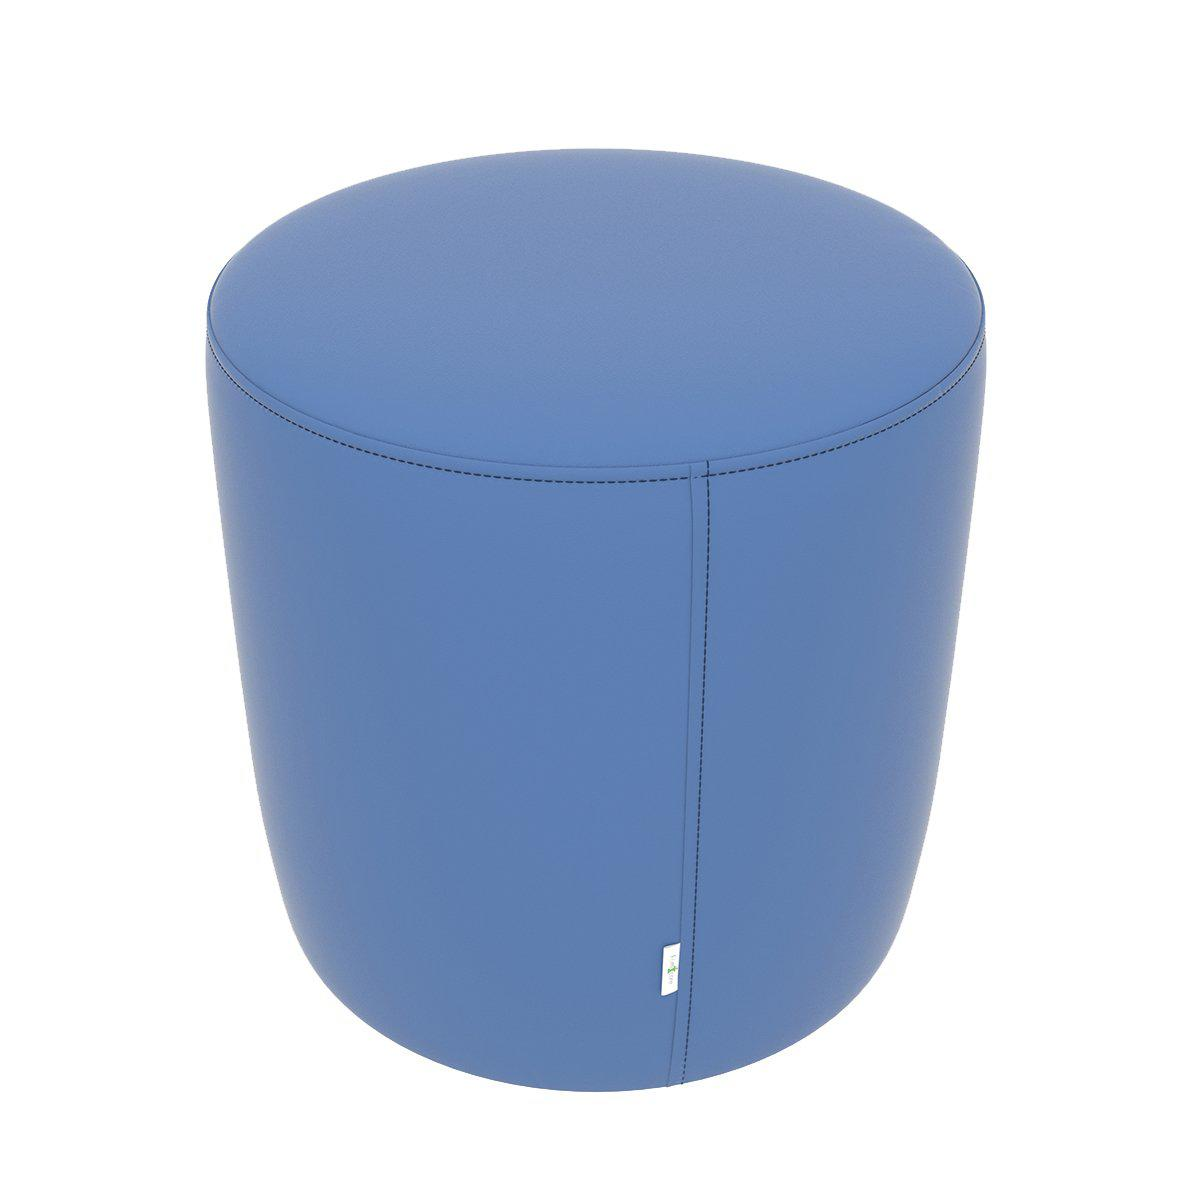 "Fomcore Ottoman Series 18"" Round Ottoman with 100% ALL-FOAM CORE, Antibacterial Vinyl Upholstery, LIFETIME WARRANTY"